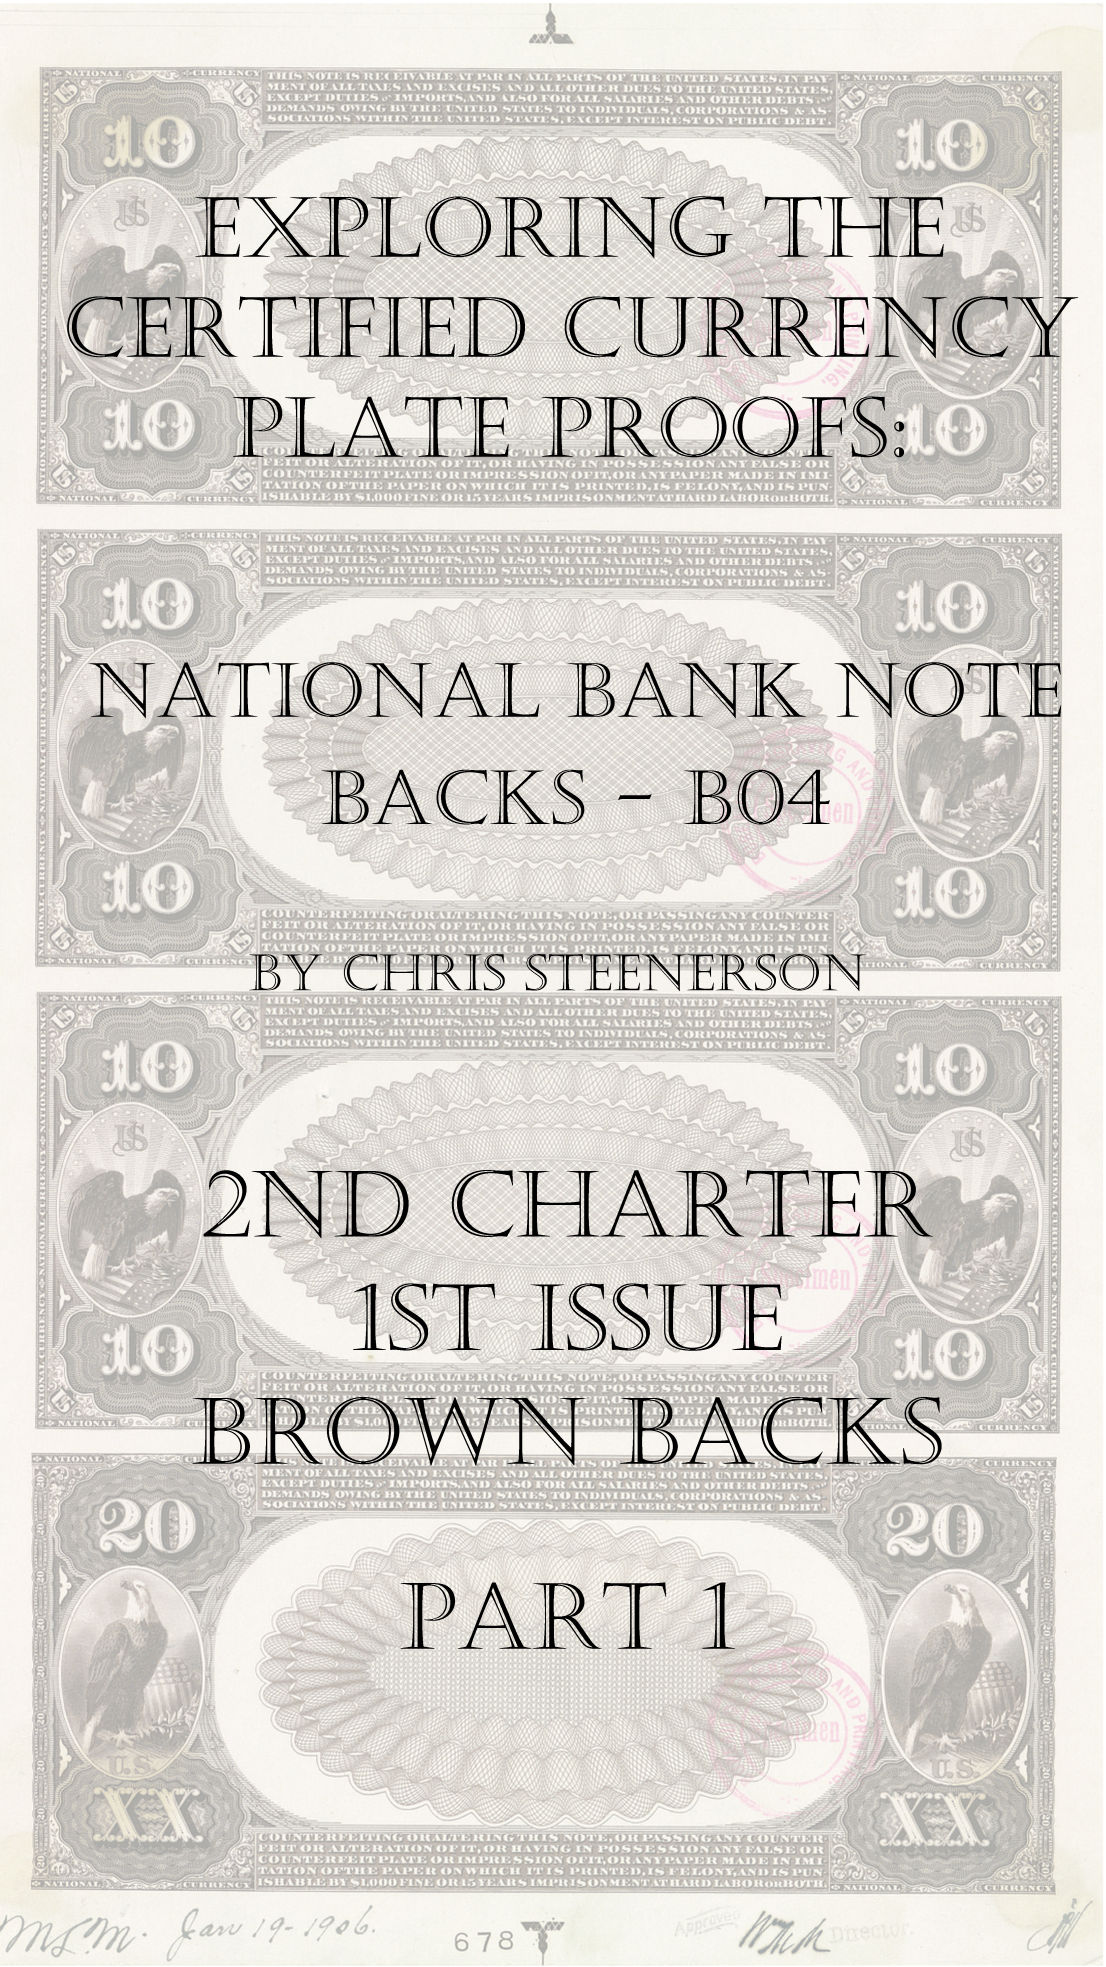 Backs 2nd Charter 1st Issue Brown Back Currency Proofs